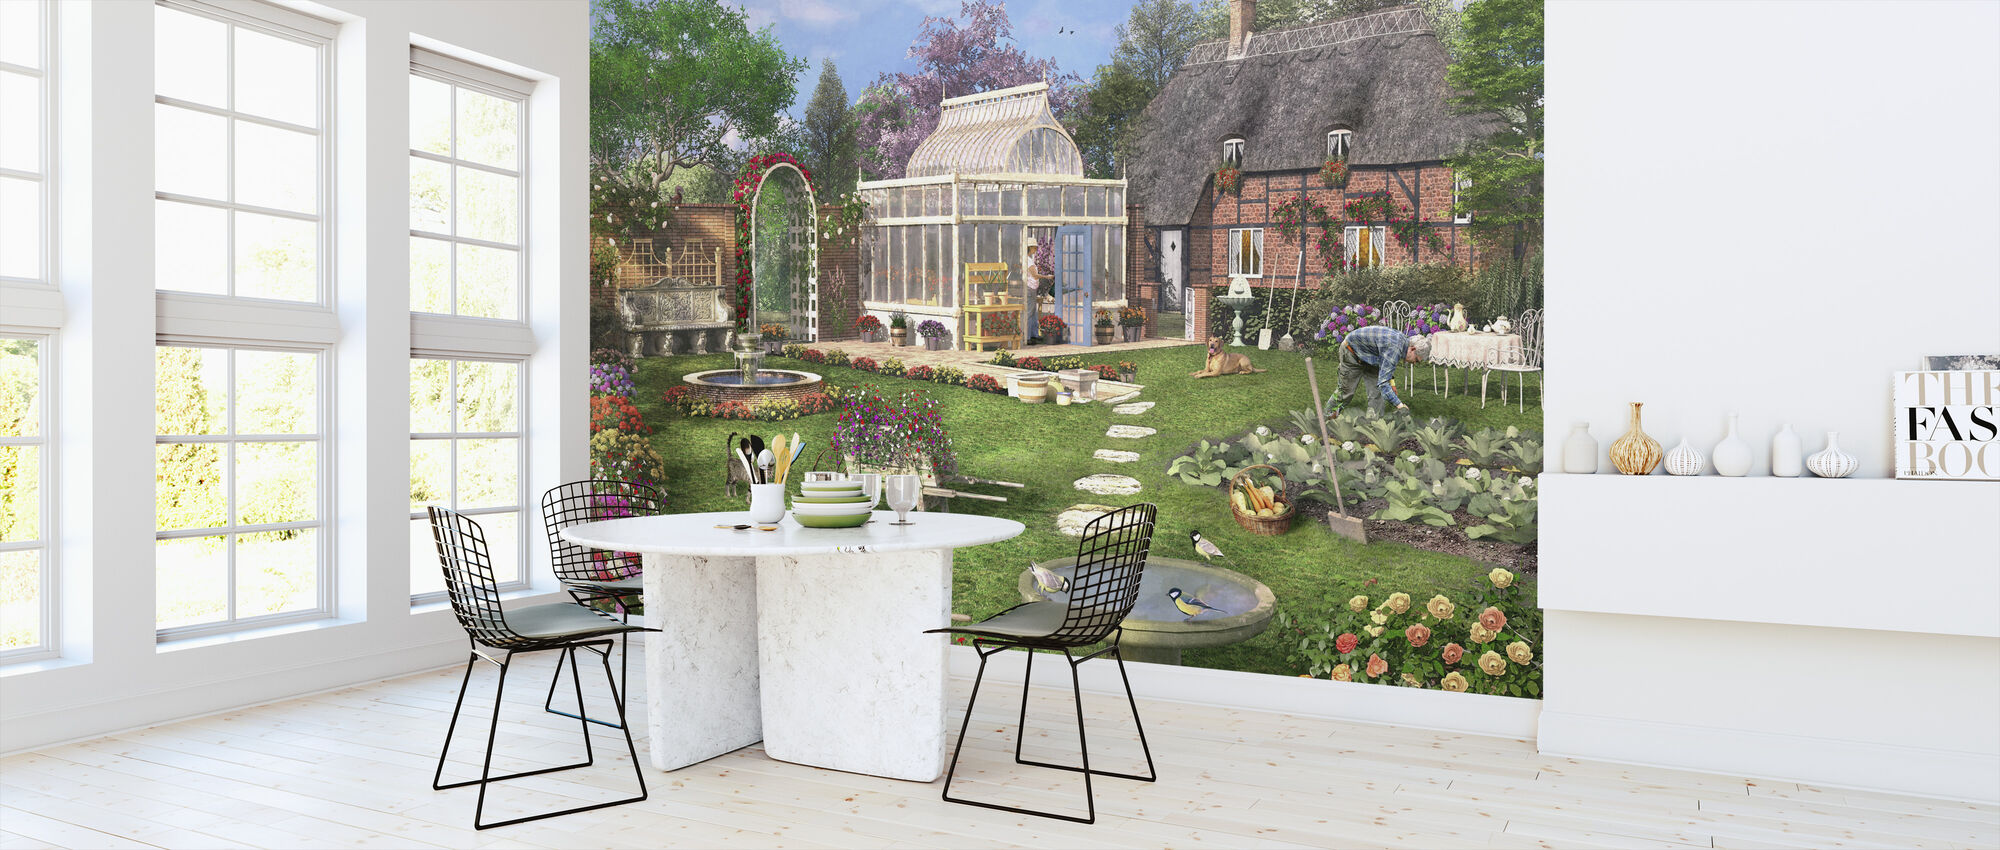 The Cottage Garden - Wallpaper - Kitchen